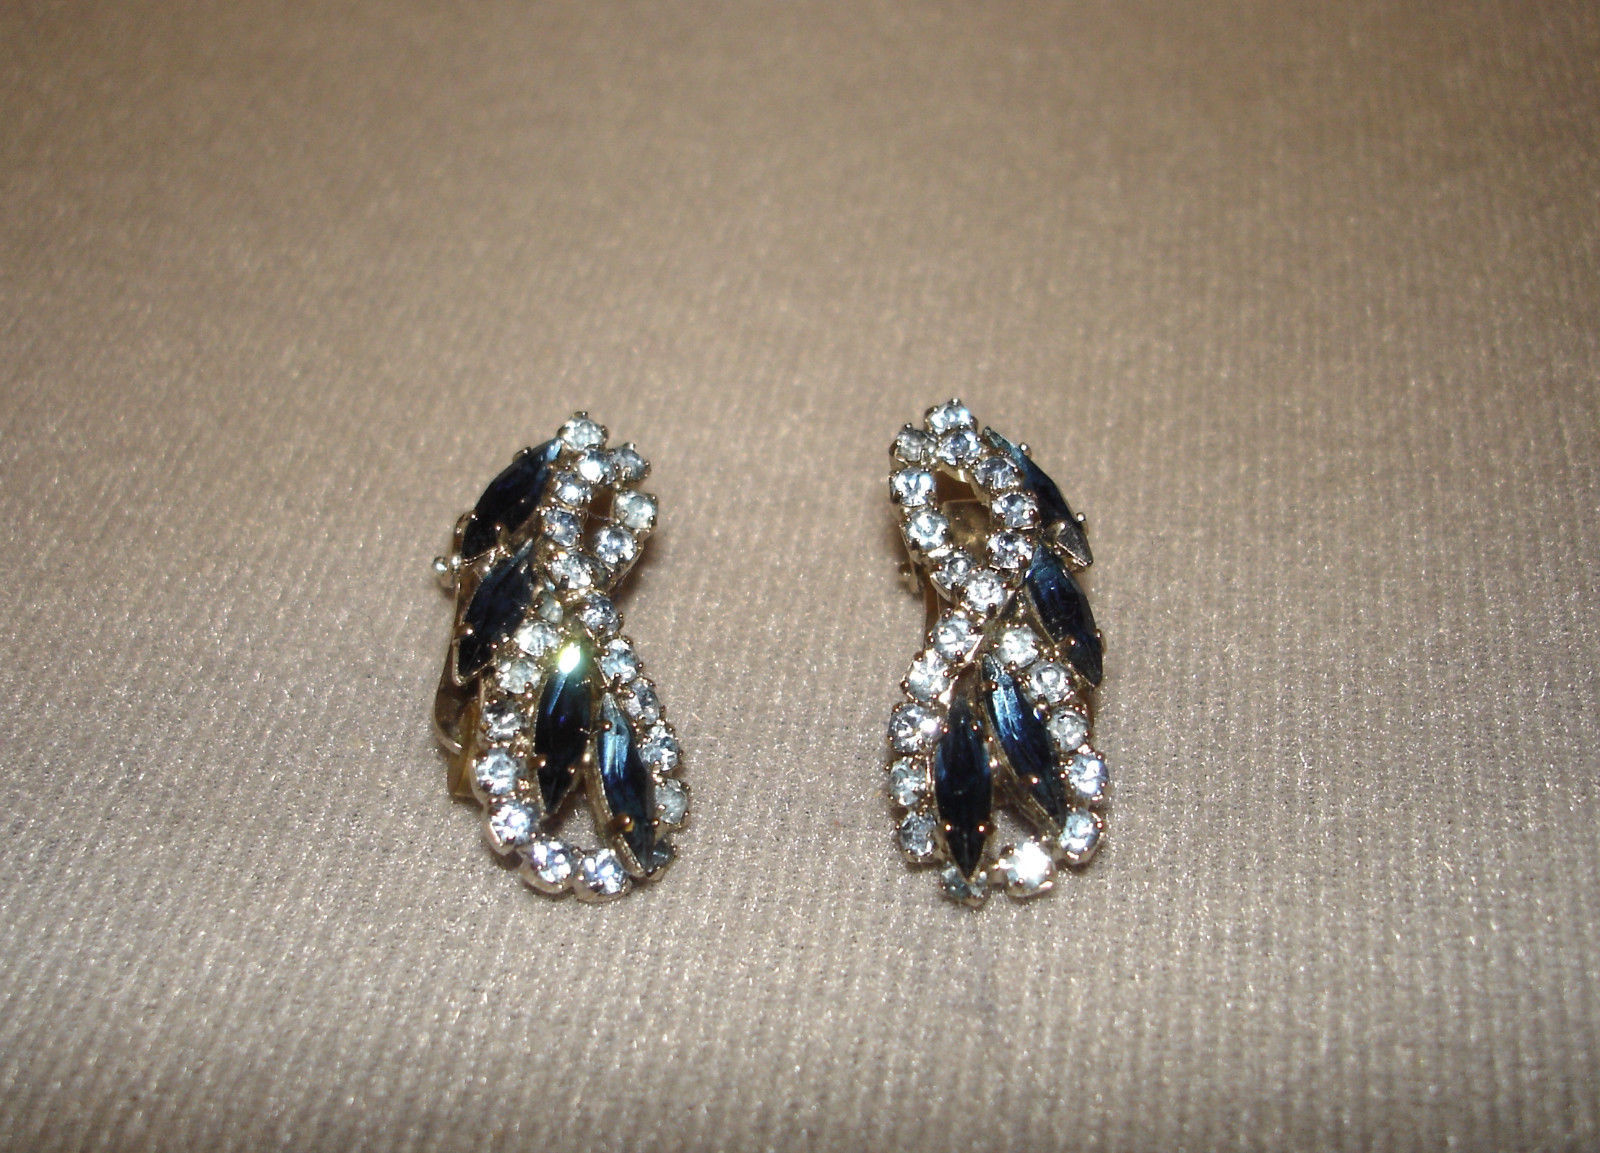 HOBE Signed Clip Rhinestone Earrings with Brooch - Unsigned